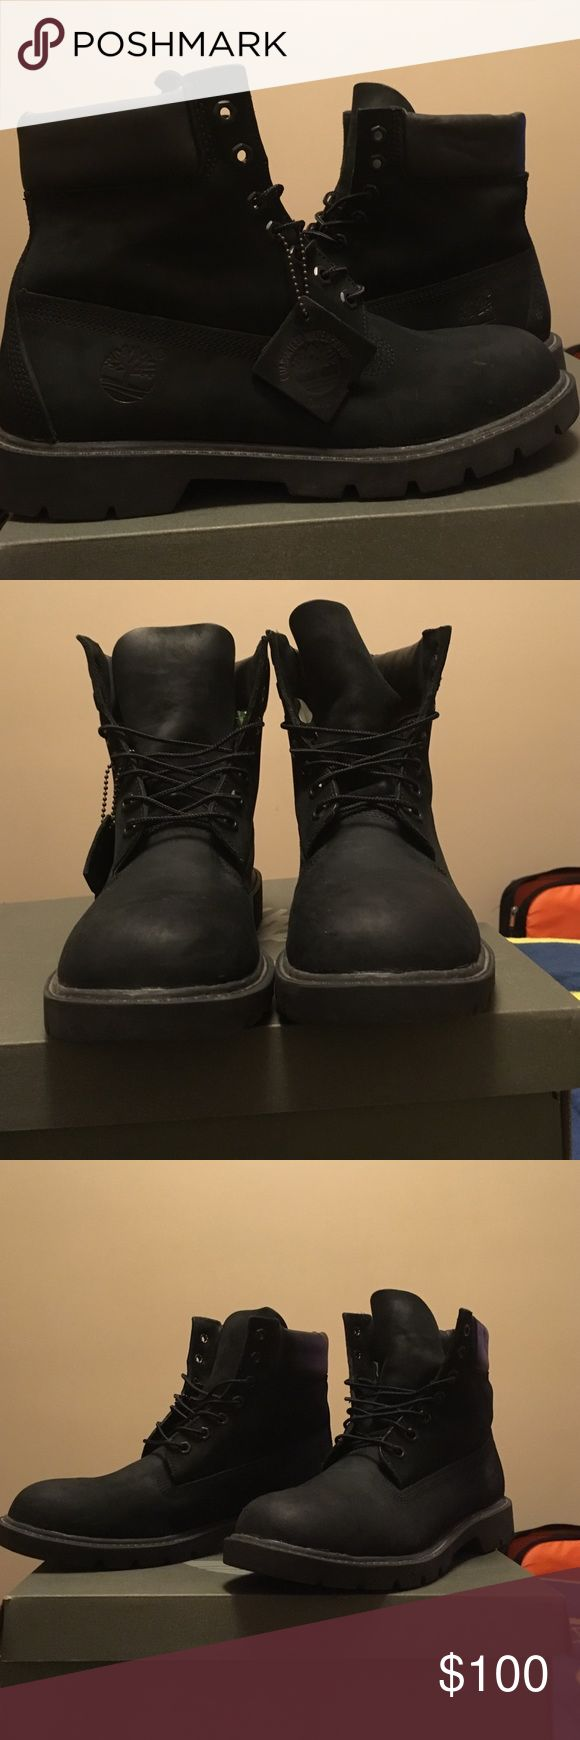 all black timberlands 9/10 condition  with original box Timberland Shoes Rain & Snow Boots